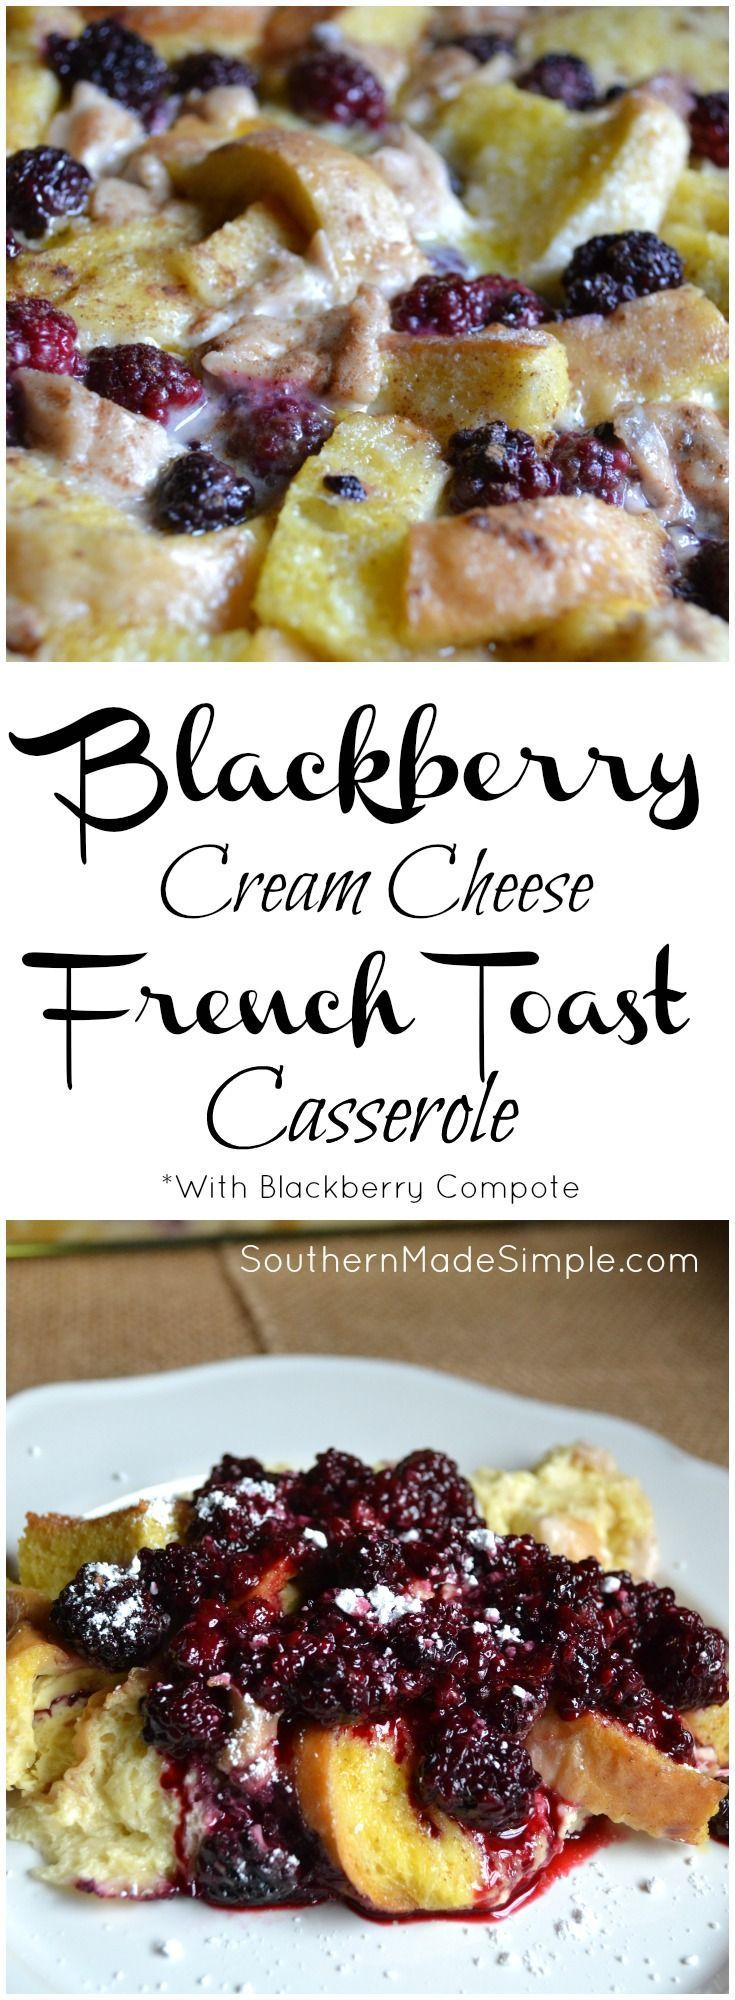 Blackberry Cream Cheese French Toast Casserole with Blackberry Compote - So delicious and easy to prepare!